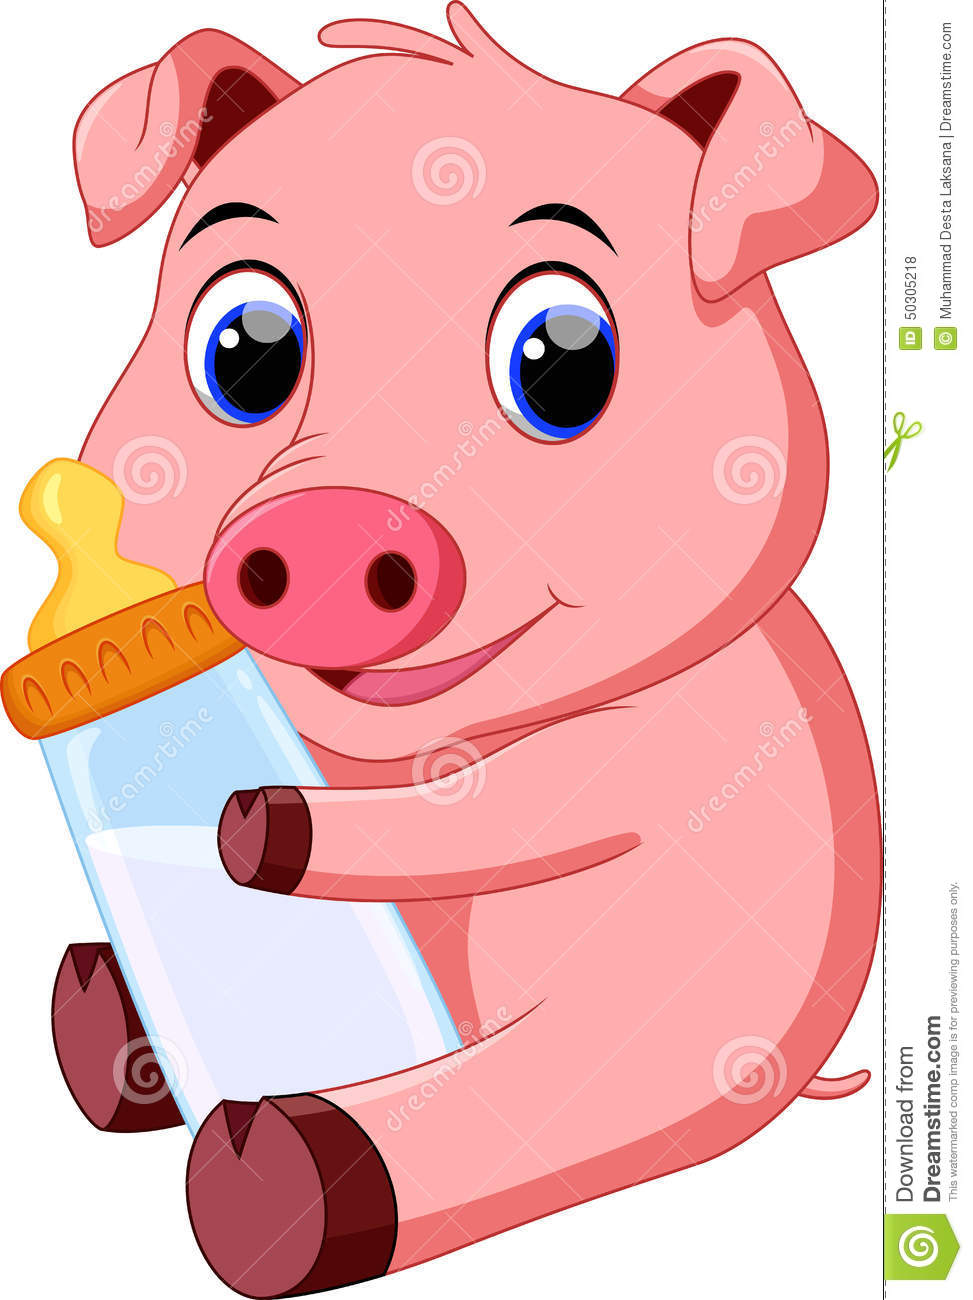 Cute Pig Cartoon | www.pixshark.com - Images Galleries ...